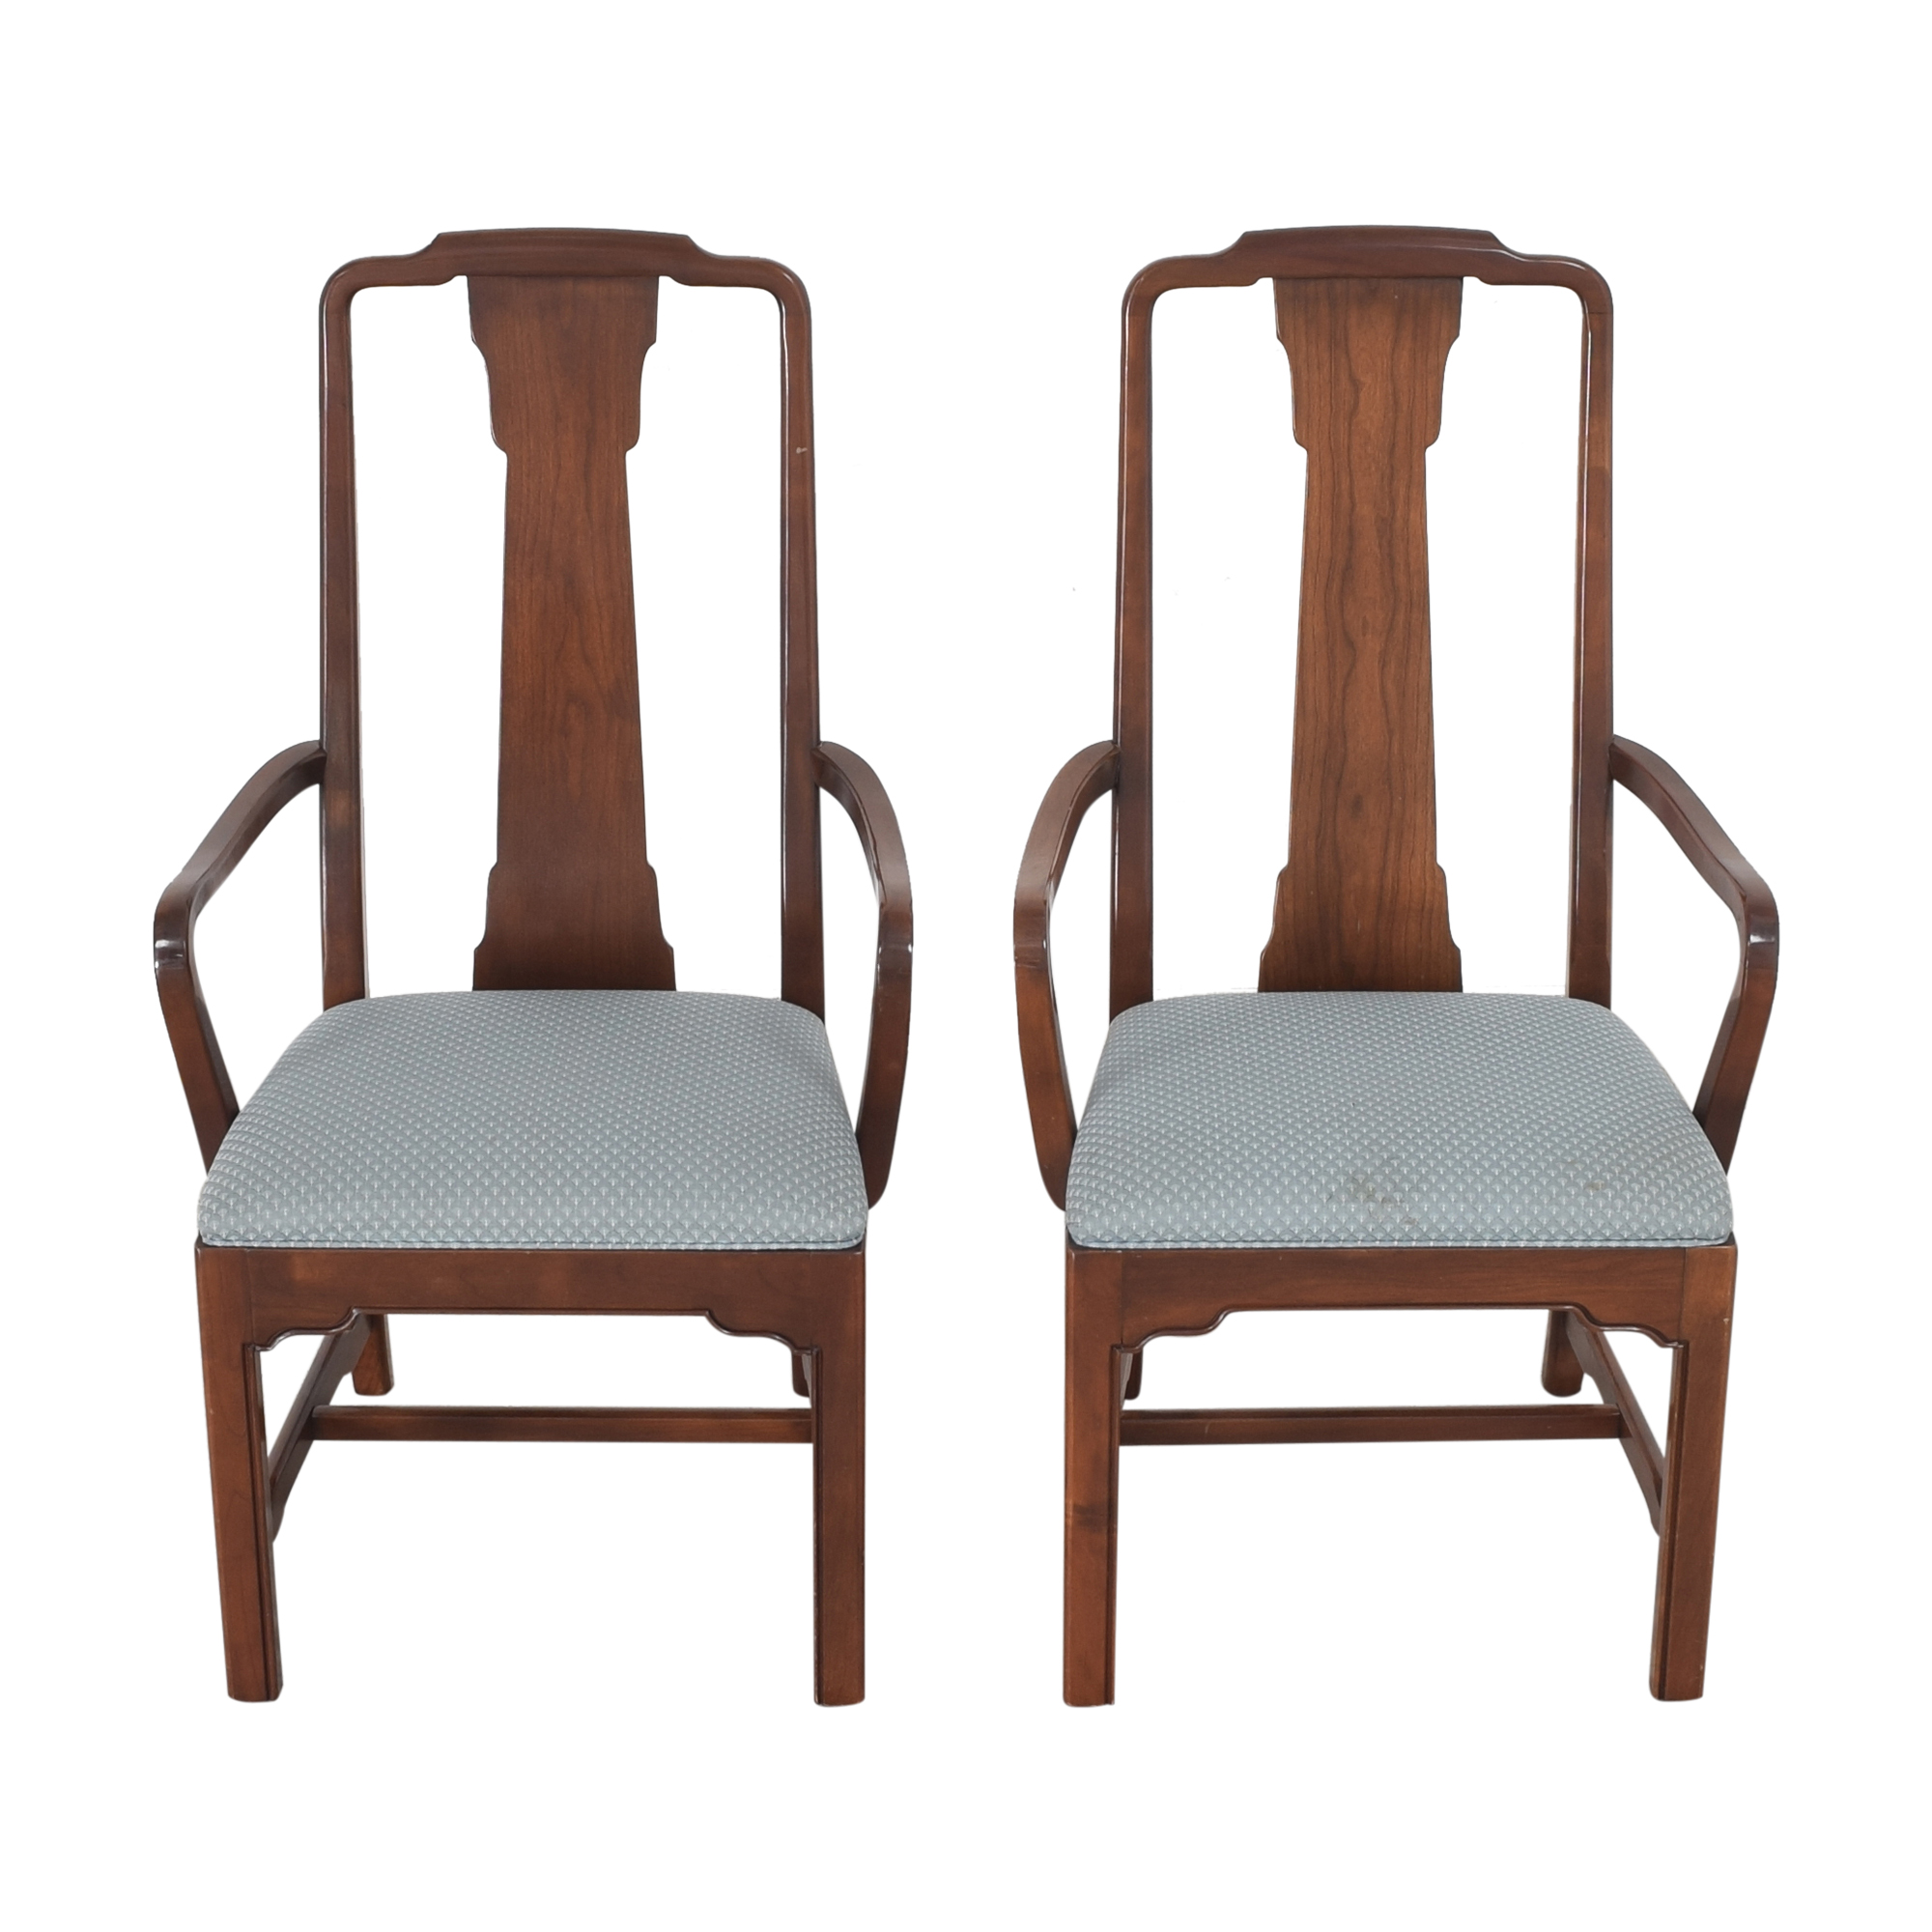 Ethan Allen Ethan Allen Canova Campaign Dining Arm Chairs discount